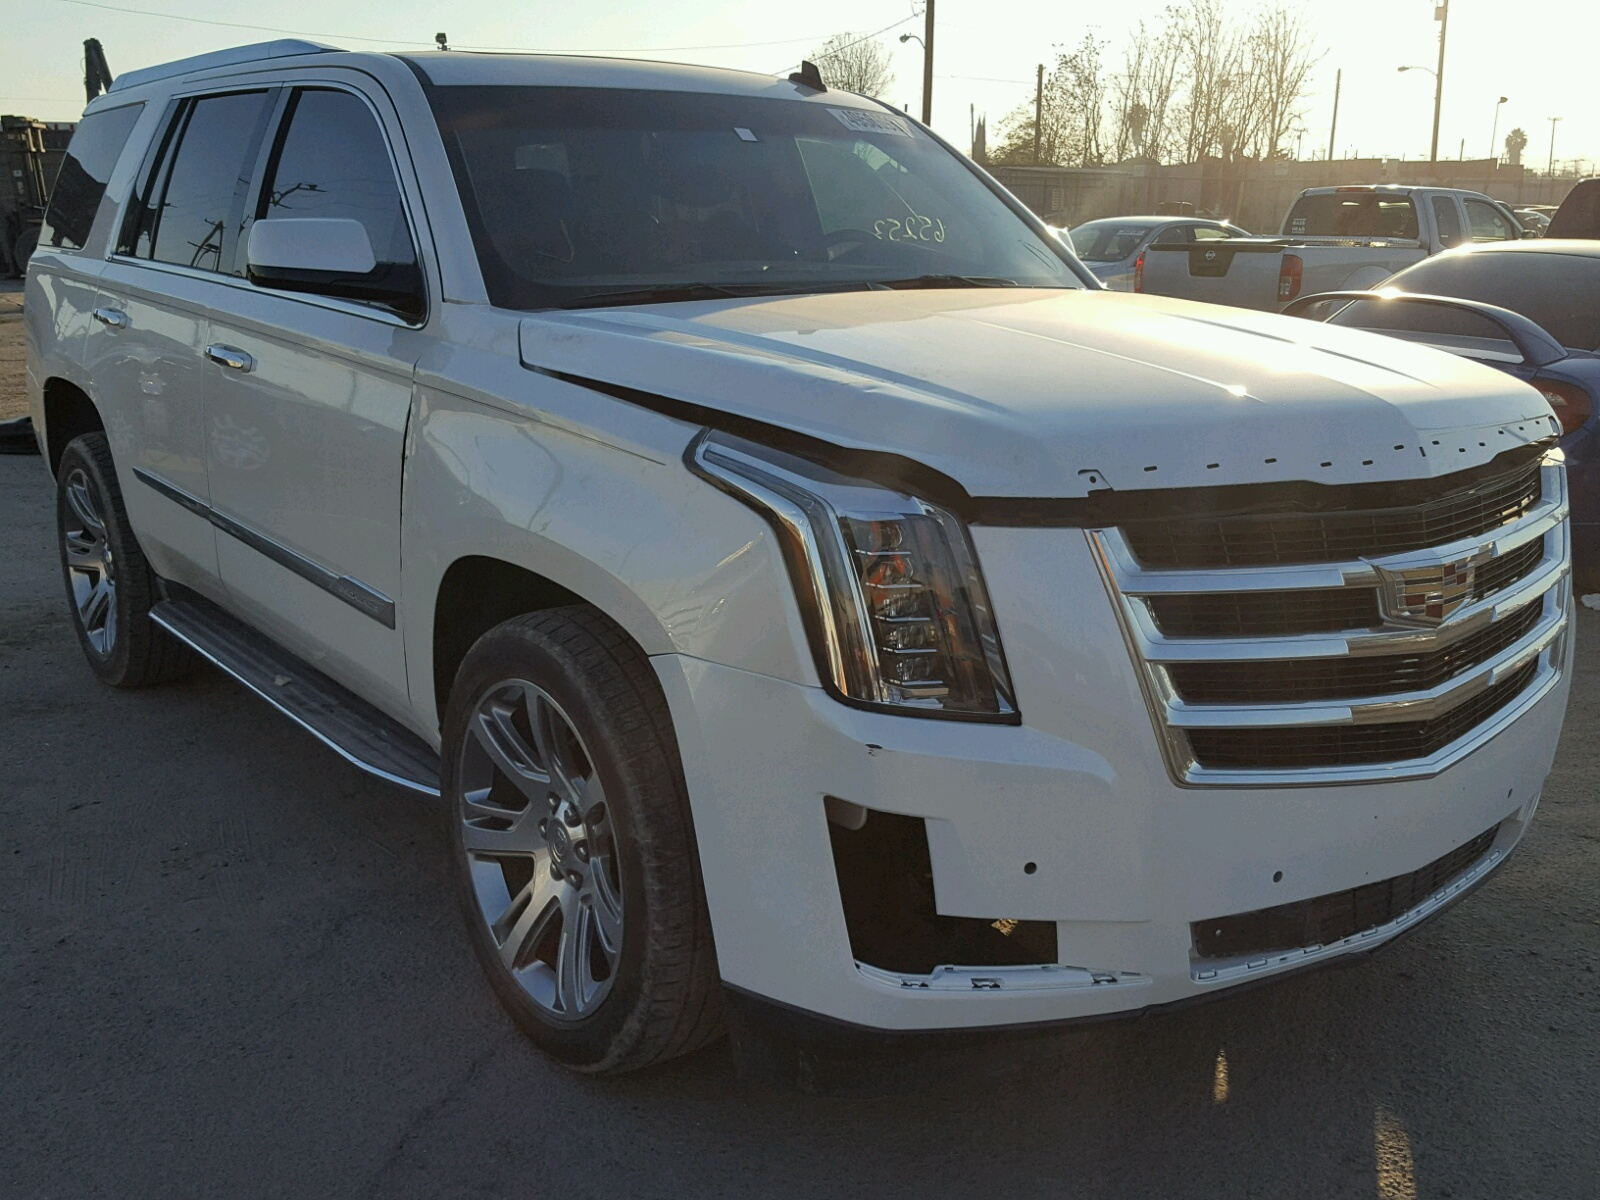 Copart Home Page >> 1GYS3BKJ9FR189196 | 2015 WHITE CADILLAC ESCALADE L on Sale in CA - LOS ANGELES | Lot 49566937